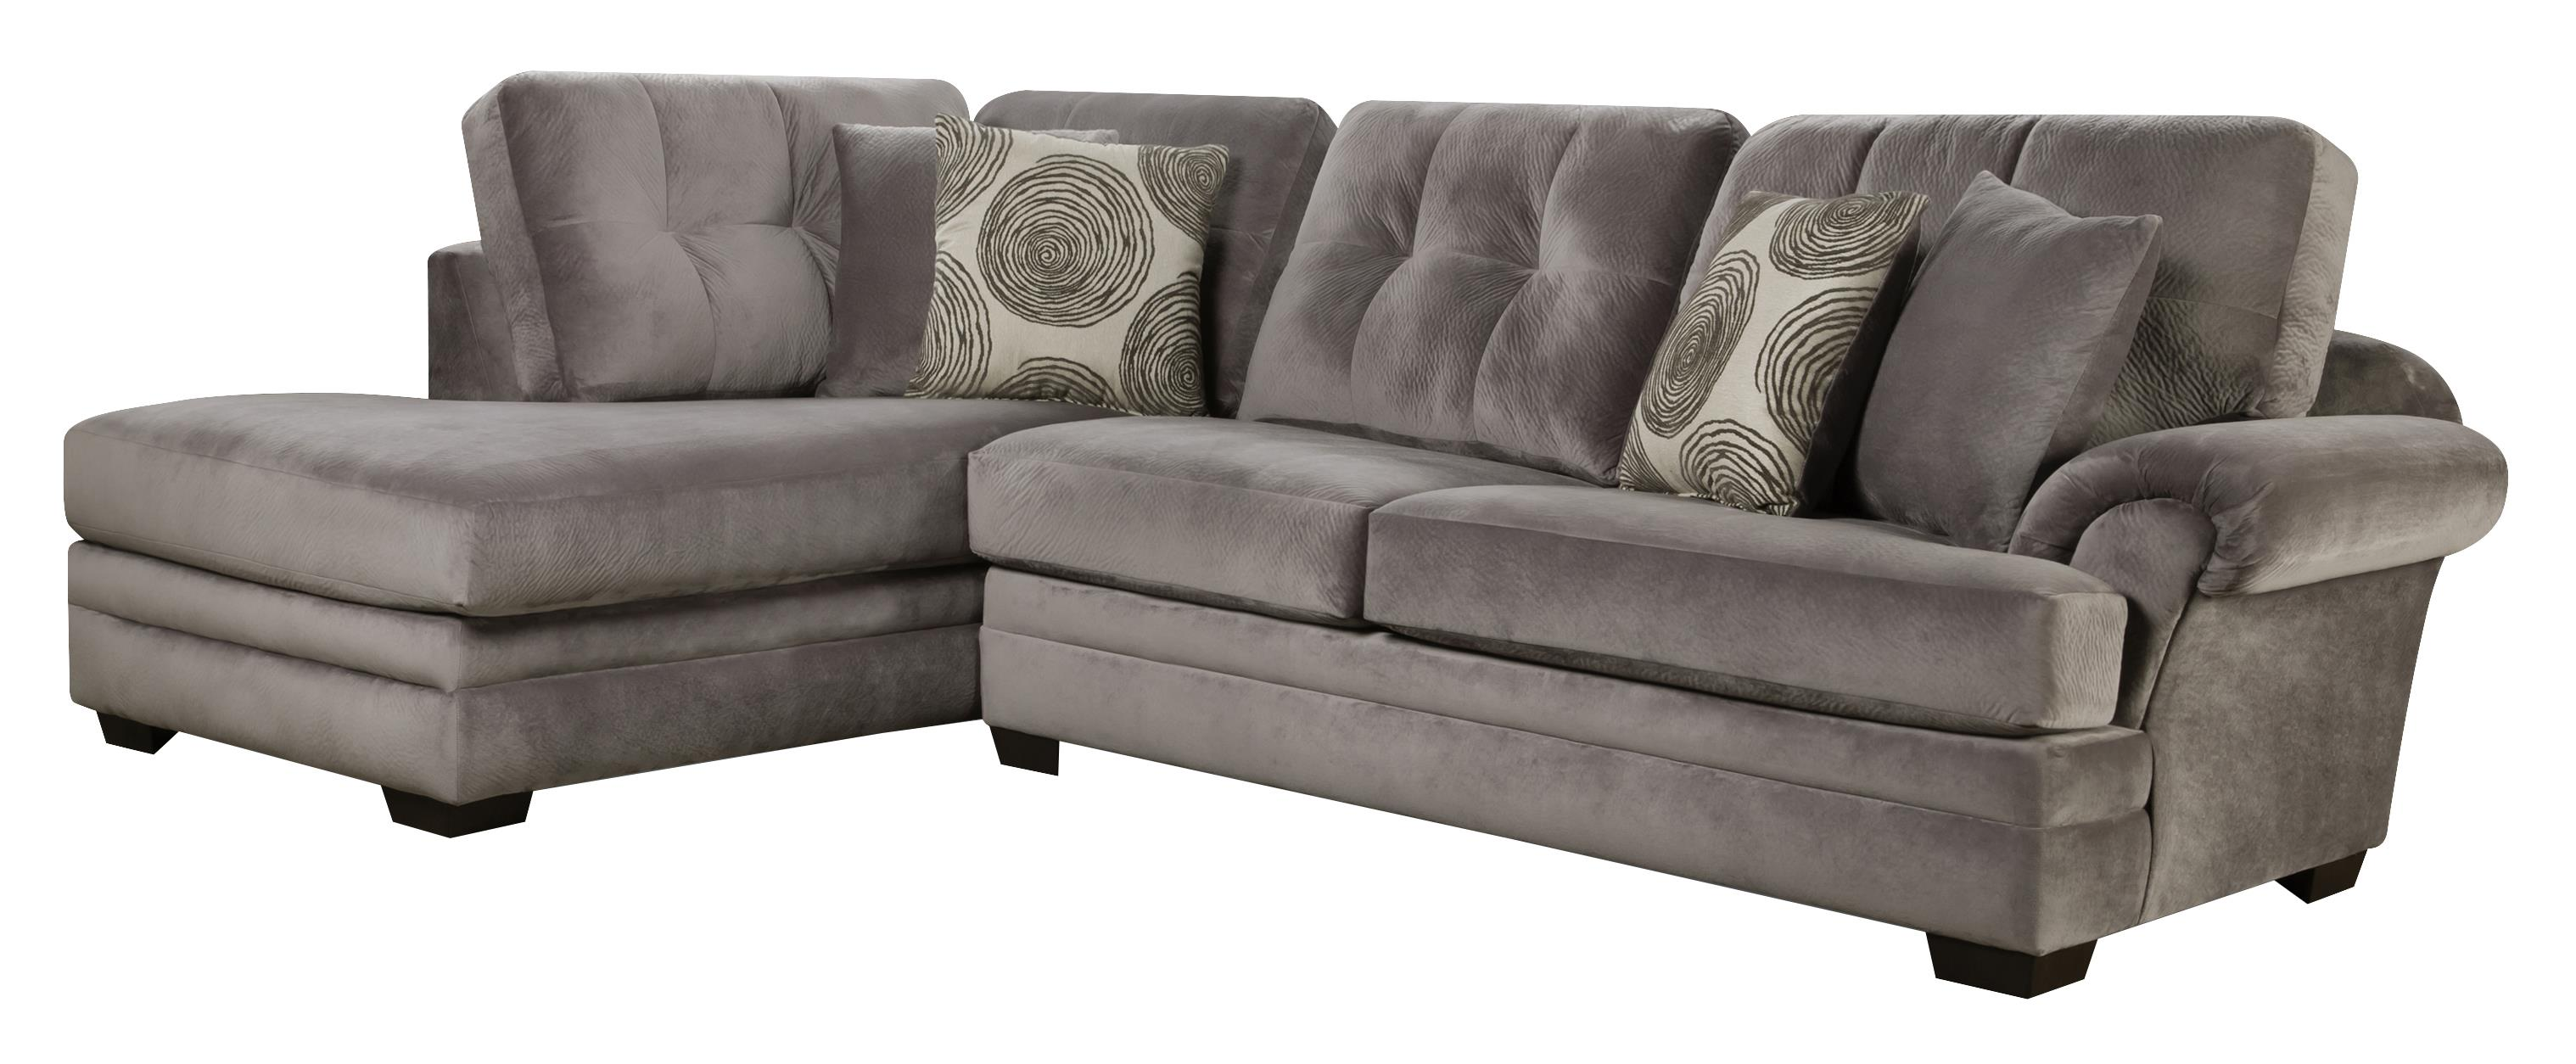 3 sided sectional sofa savoy leather costco review with chaise on left side by corinthian